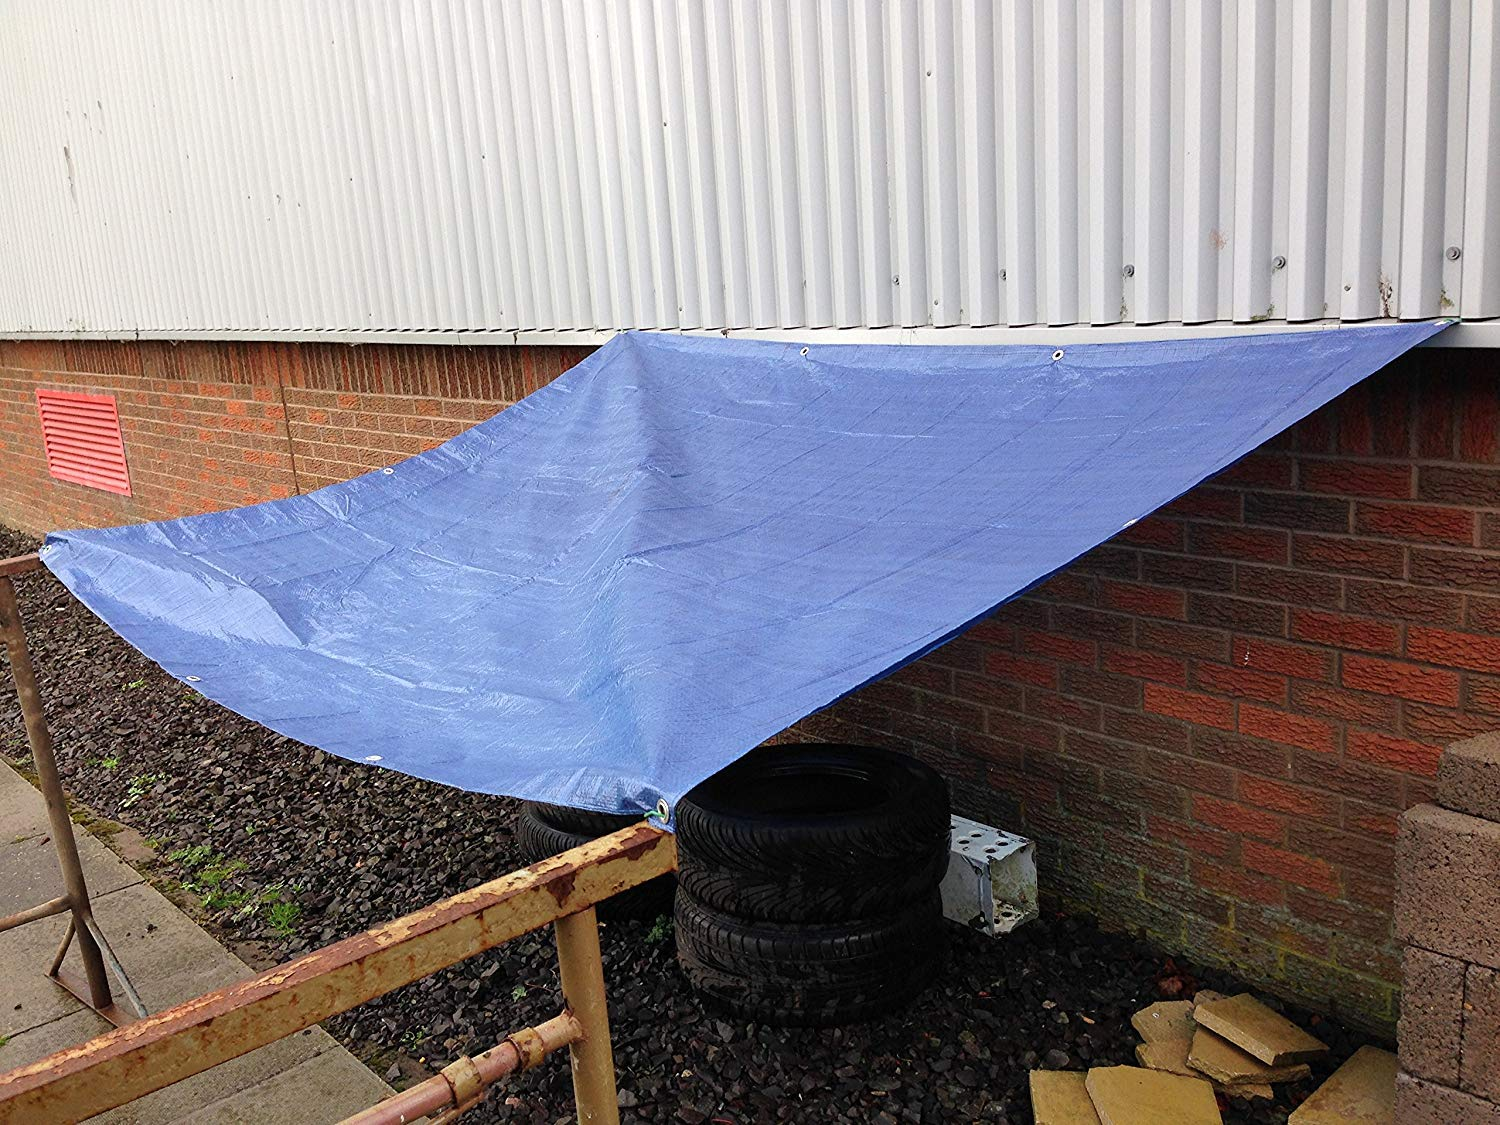 6FT X 9FT TARPAULIN COVER Laminated Woven Polypropylene cover NEILSEN TOOLS CT1050